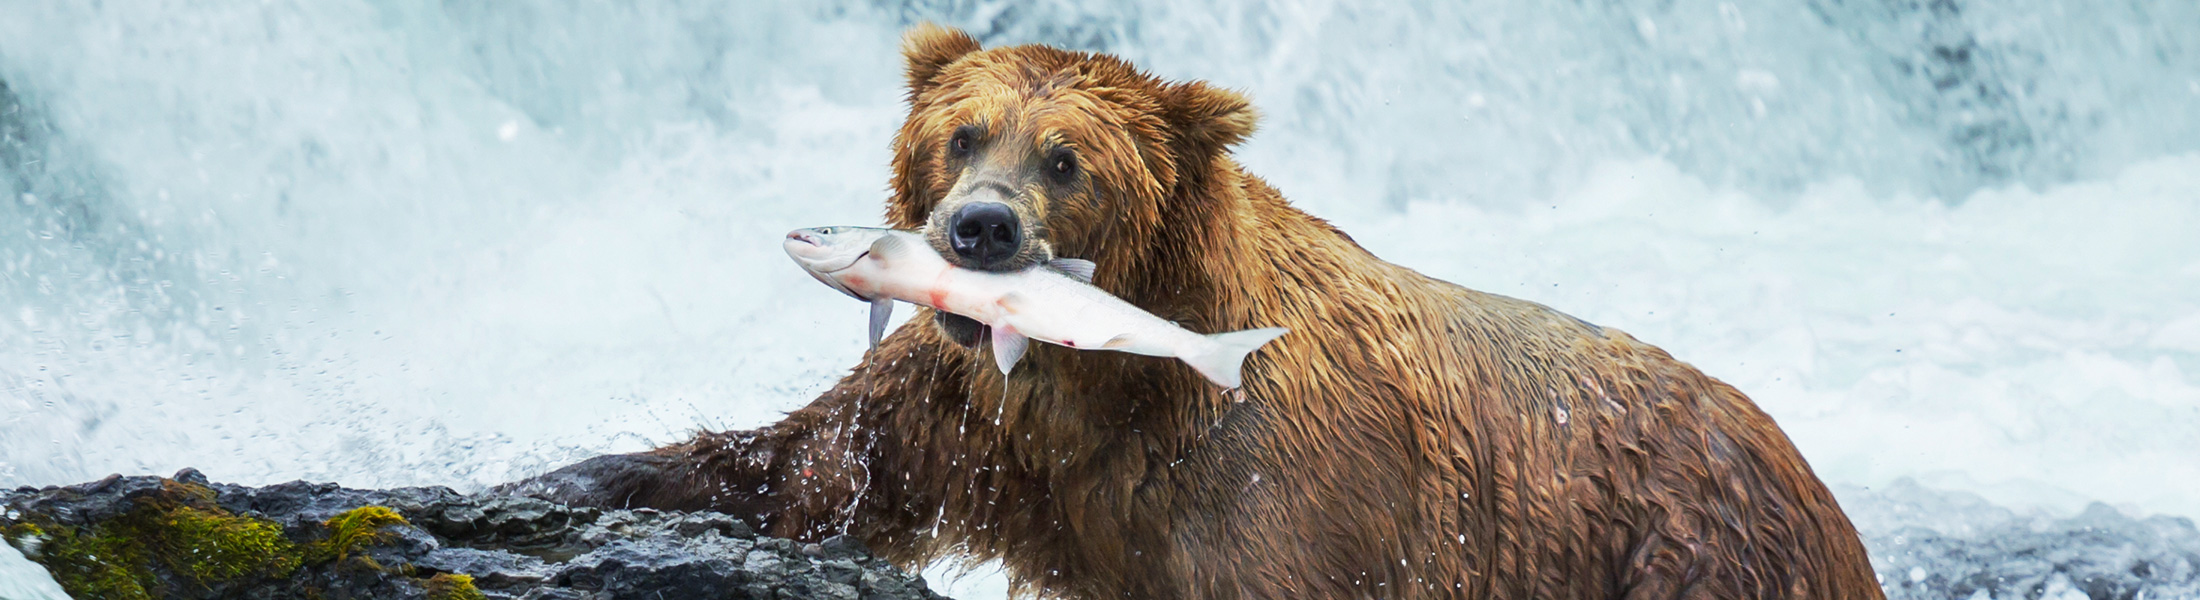 Grizzly Bear Fishing in North America